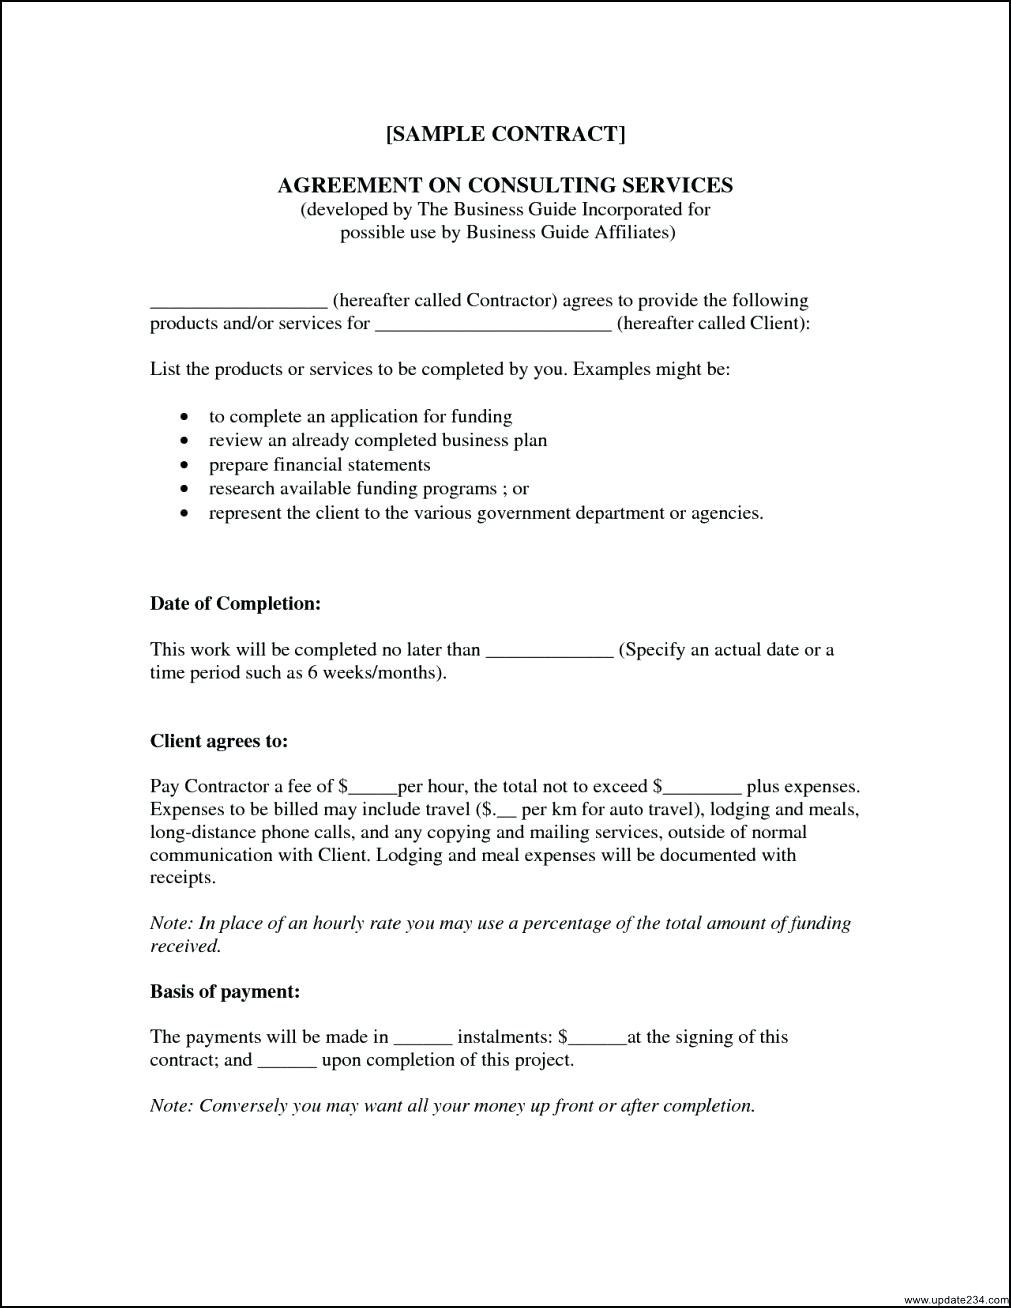 Agreement Of Consulting Services Document Sample  Consultancy Inside Consulting Service Agreement Template